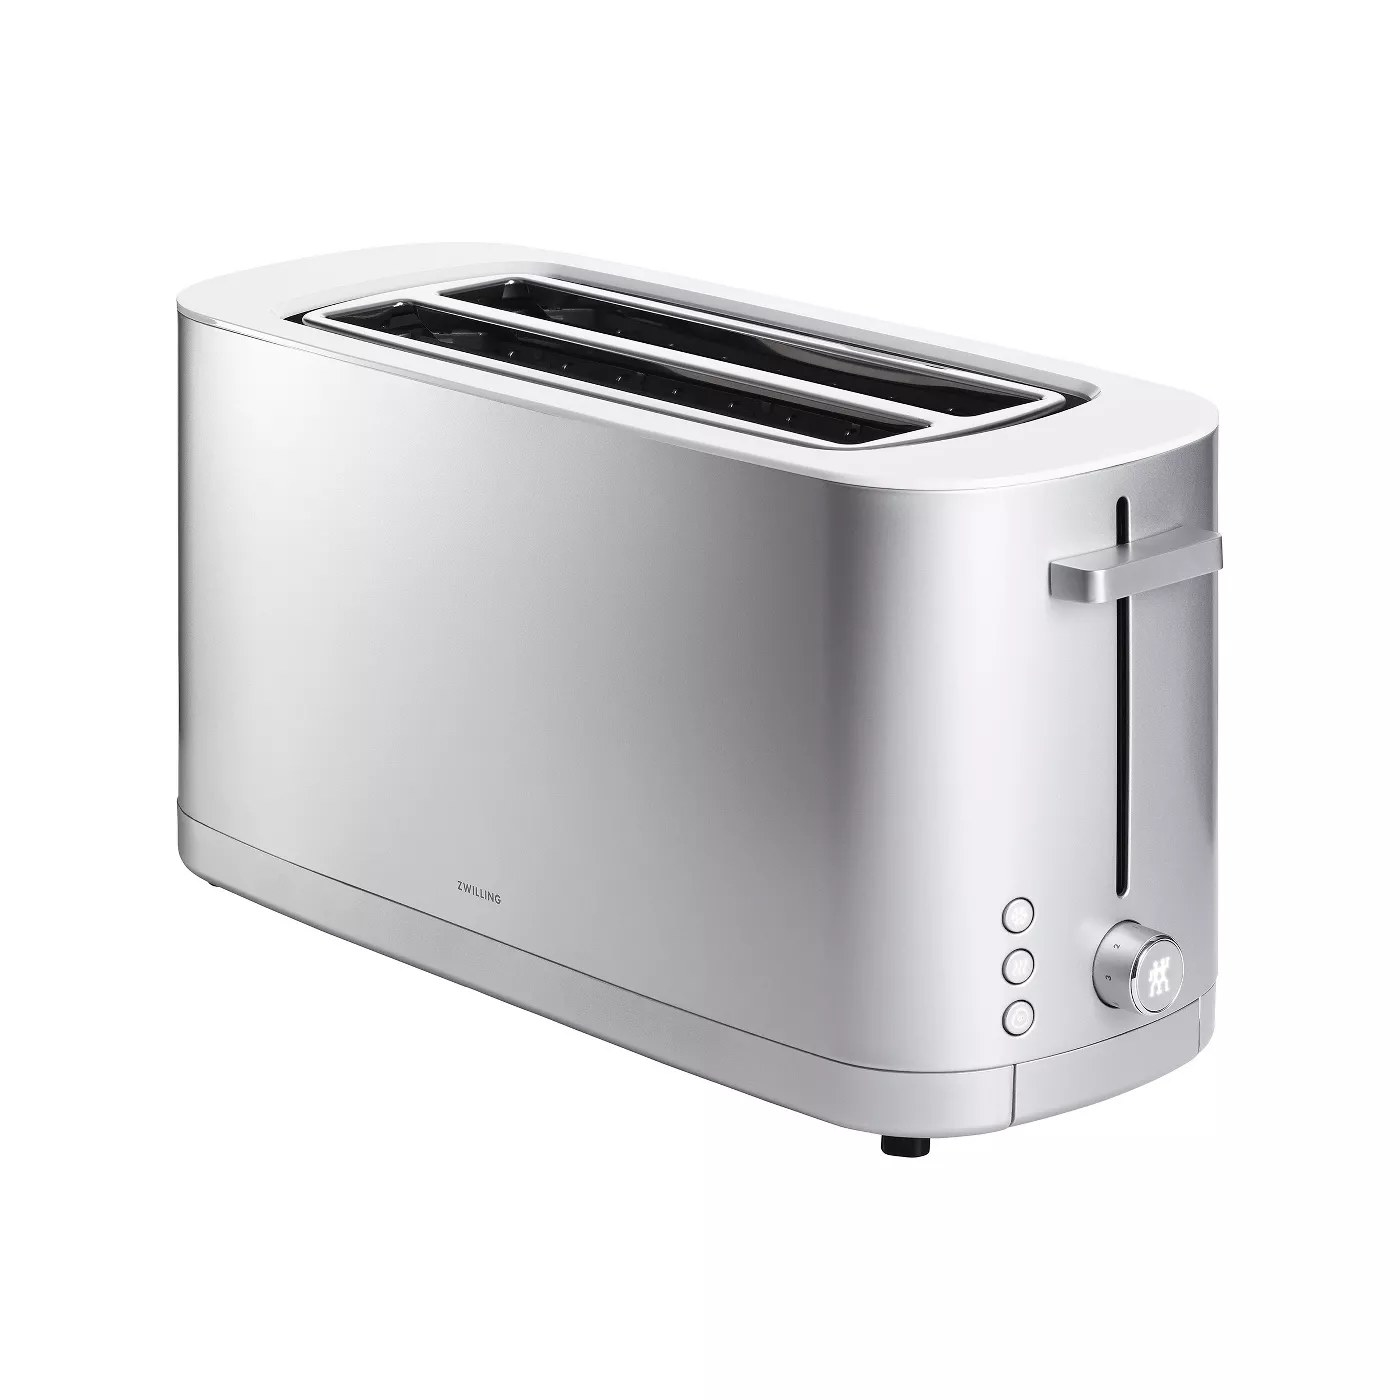 The silver Zwilling toaster